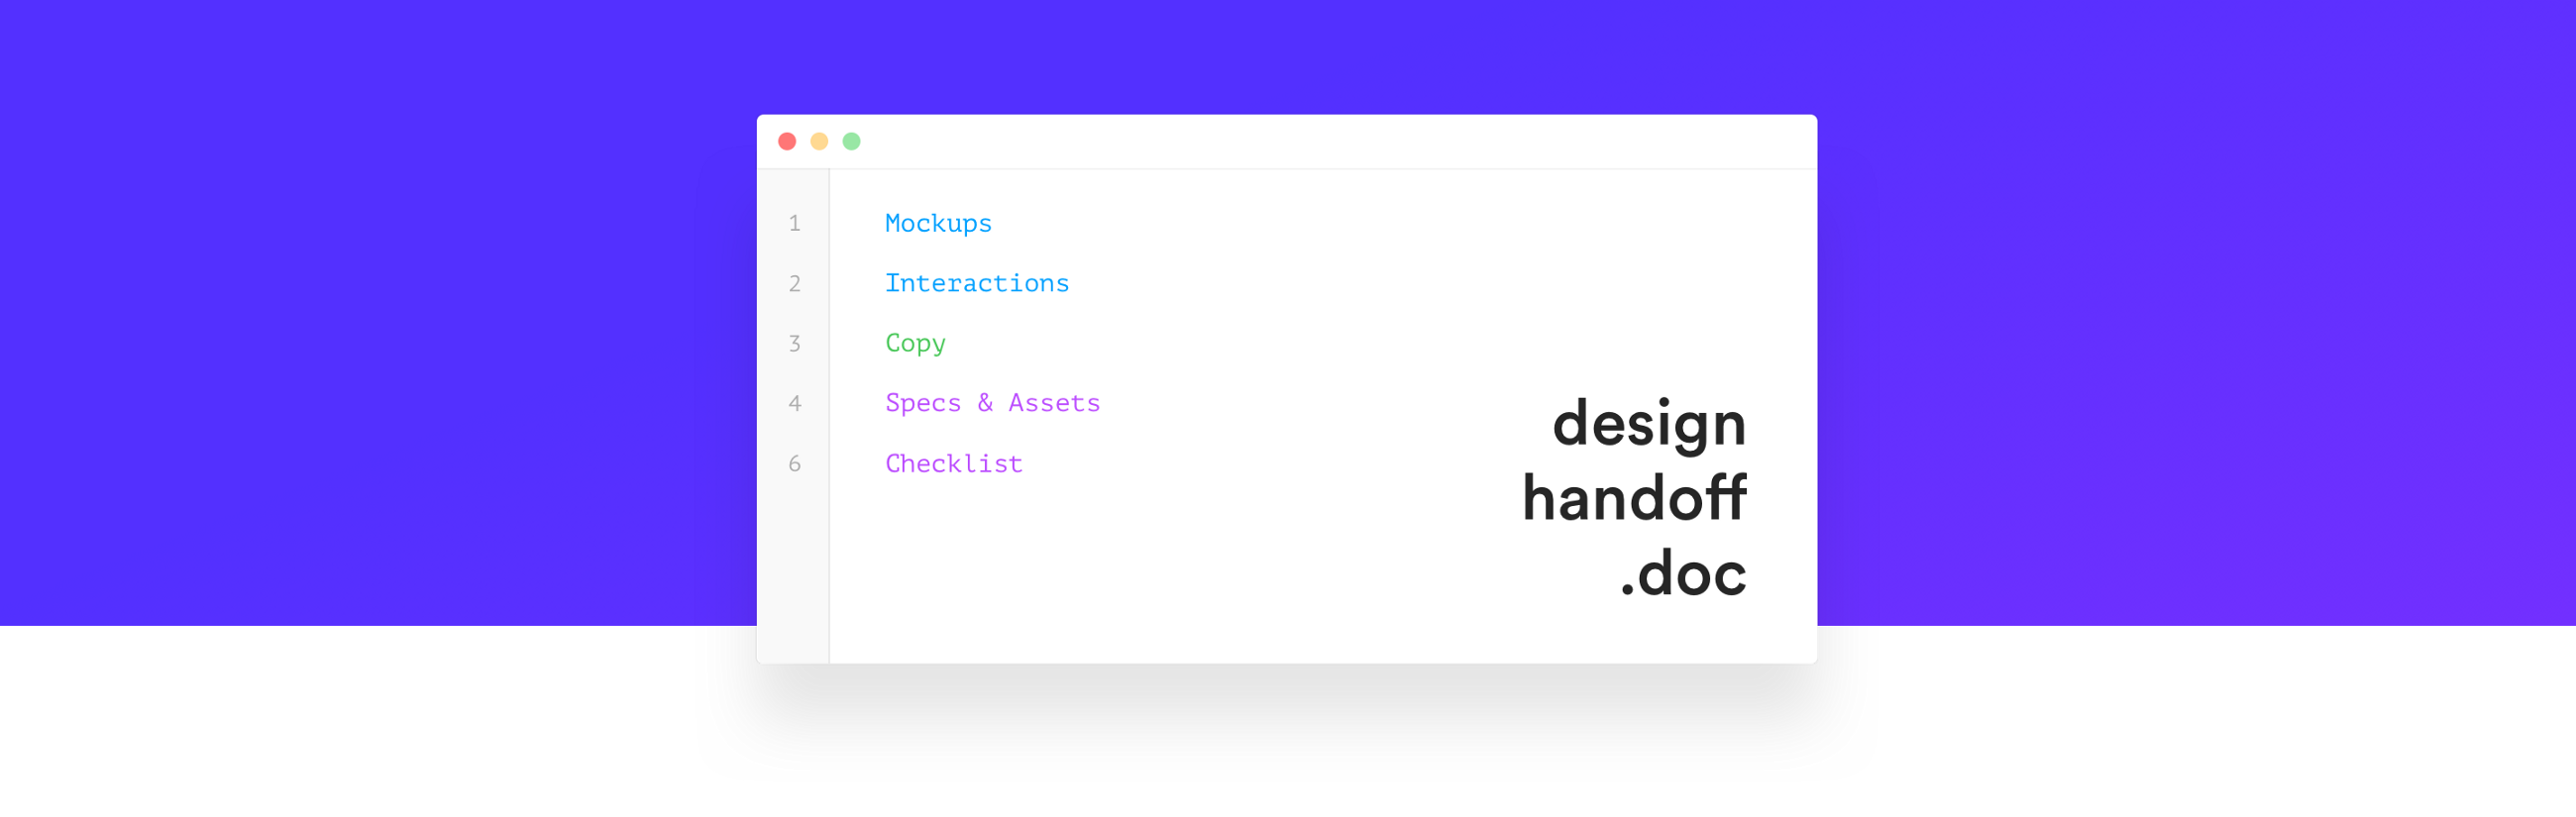 A Guide To Successful Design Handoffs Ux Collective